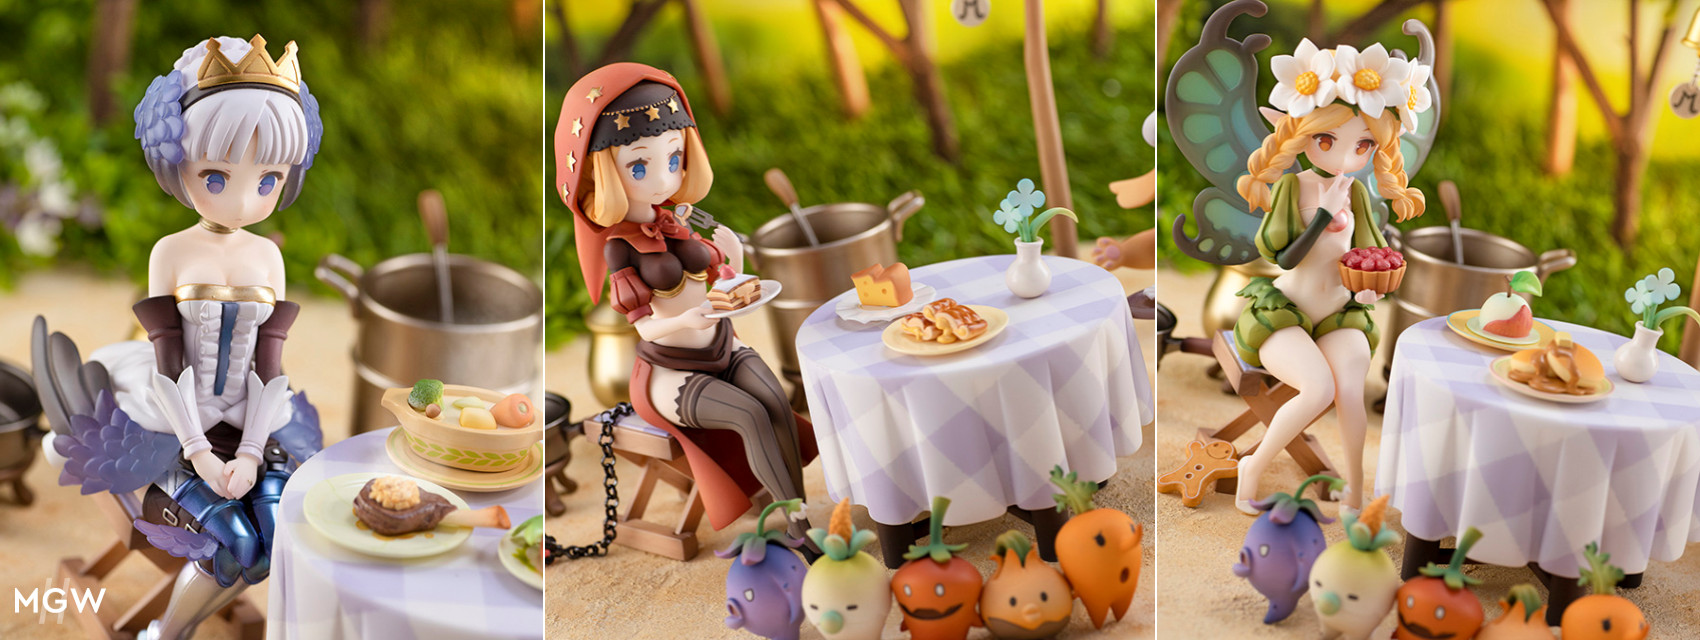 Maurys Touring Restaurant by FLARE from Odin Sphere MyGrailWatch Anime Figure Guide